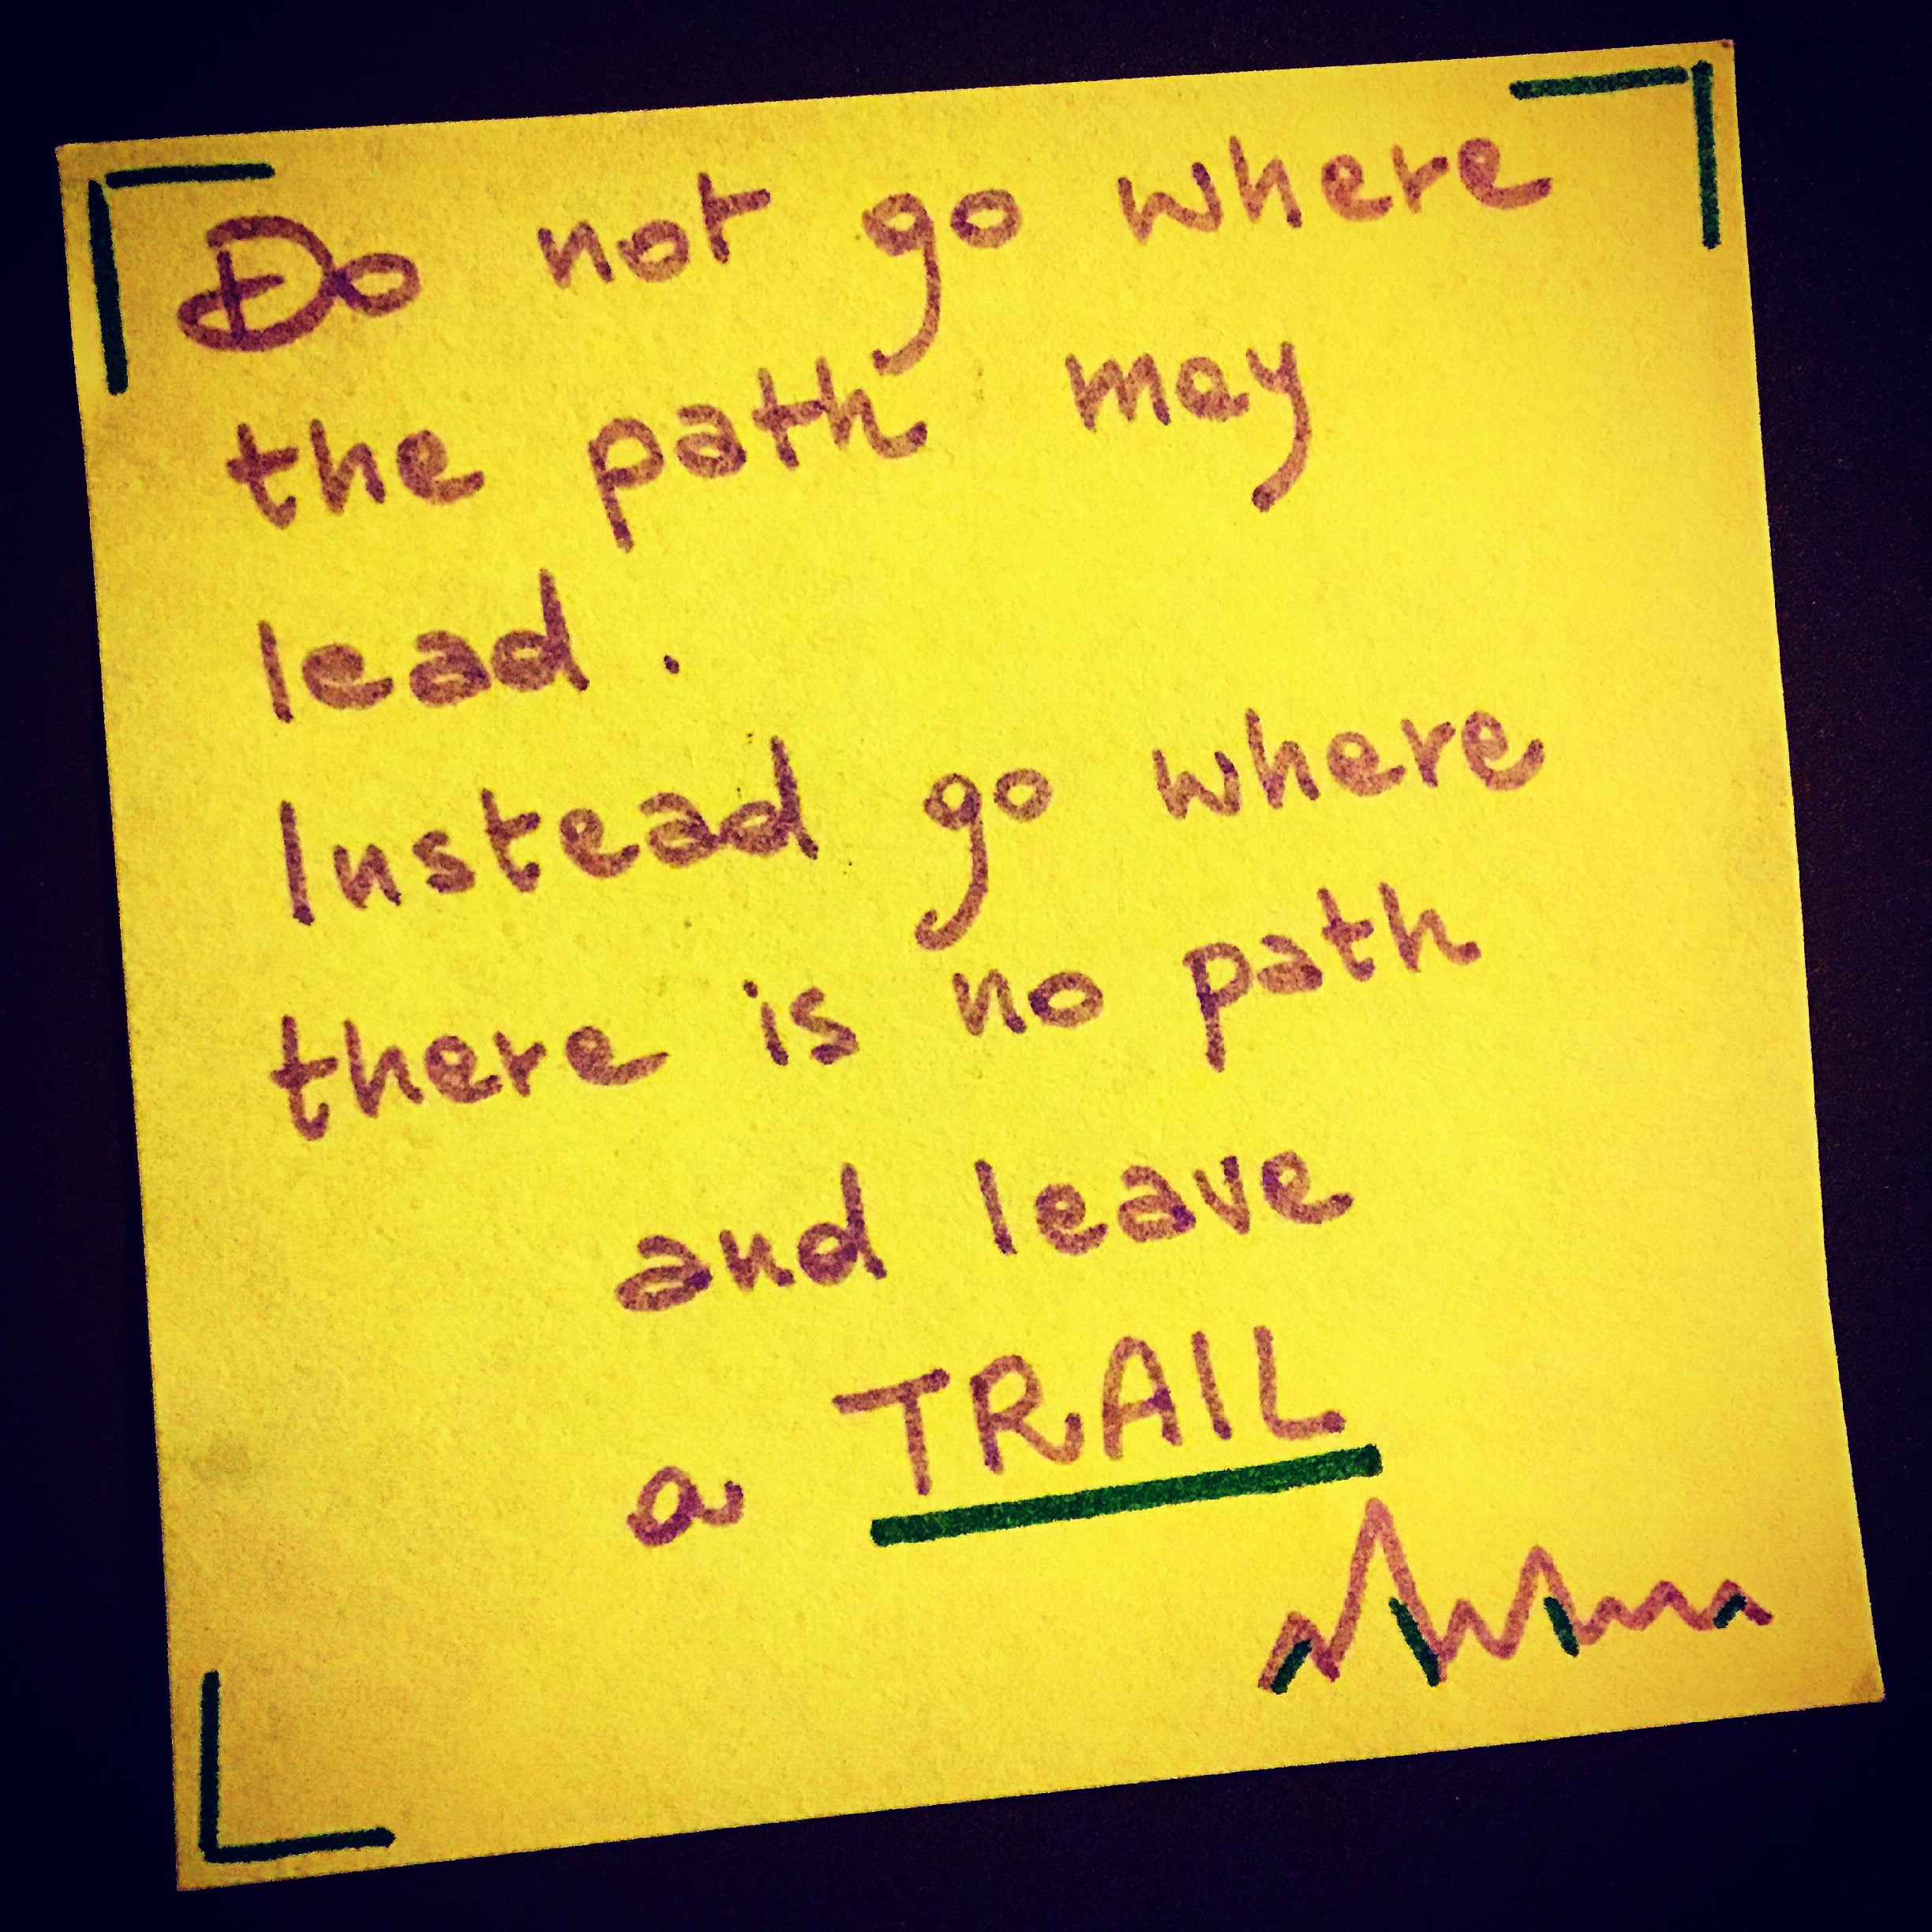 leave a trail.JPG